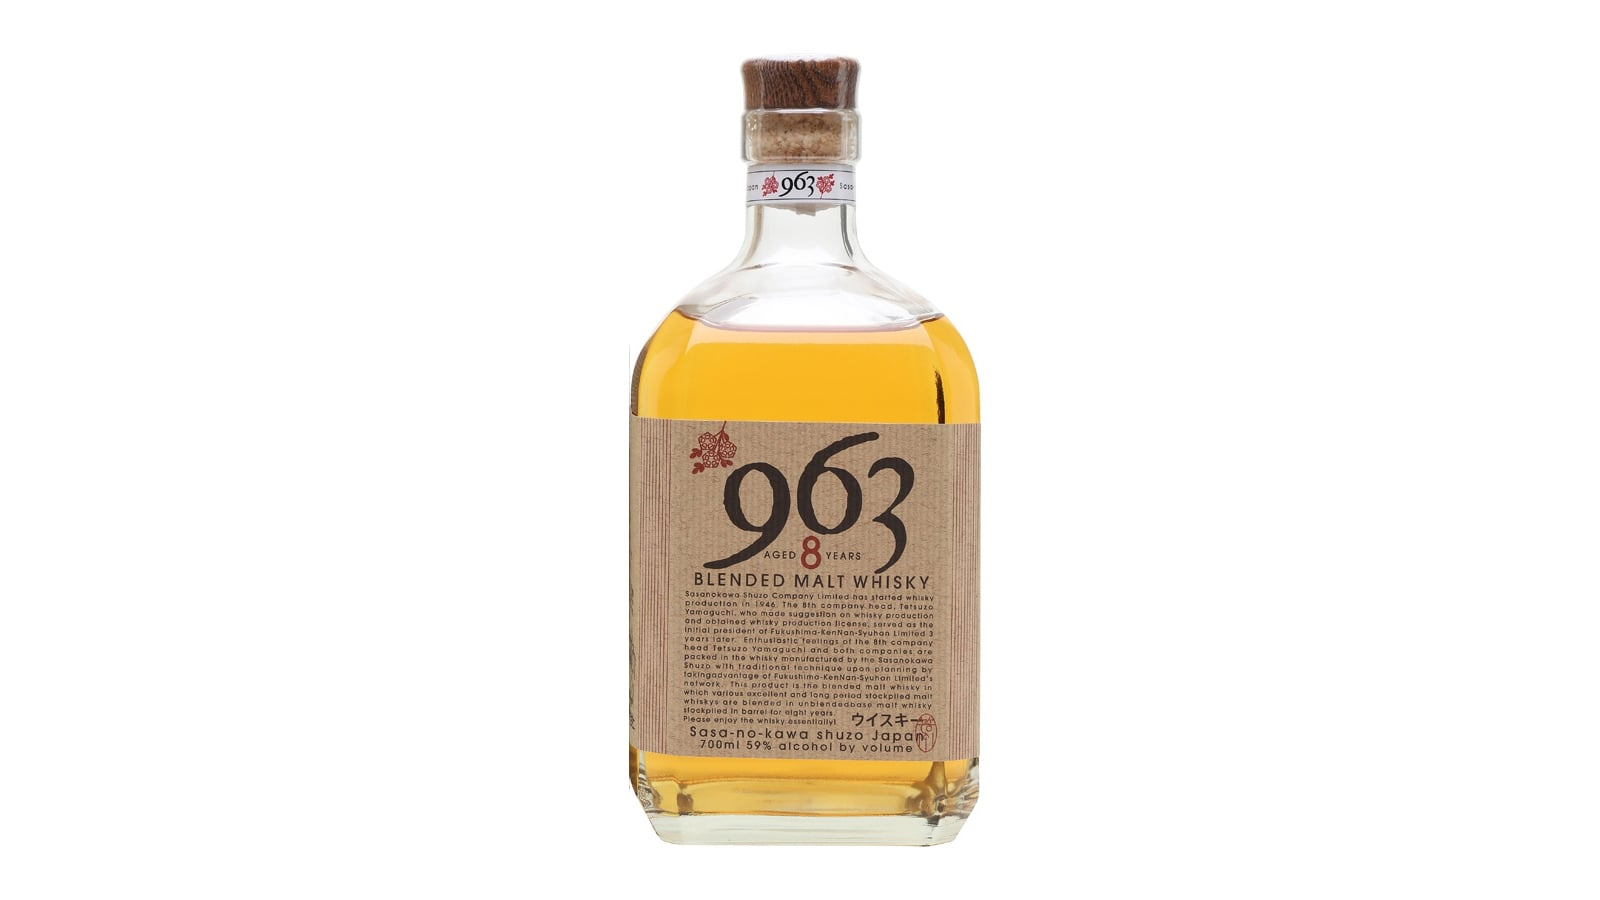 963 8 Year Old Blended Malt